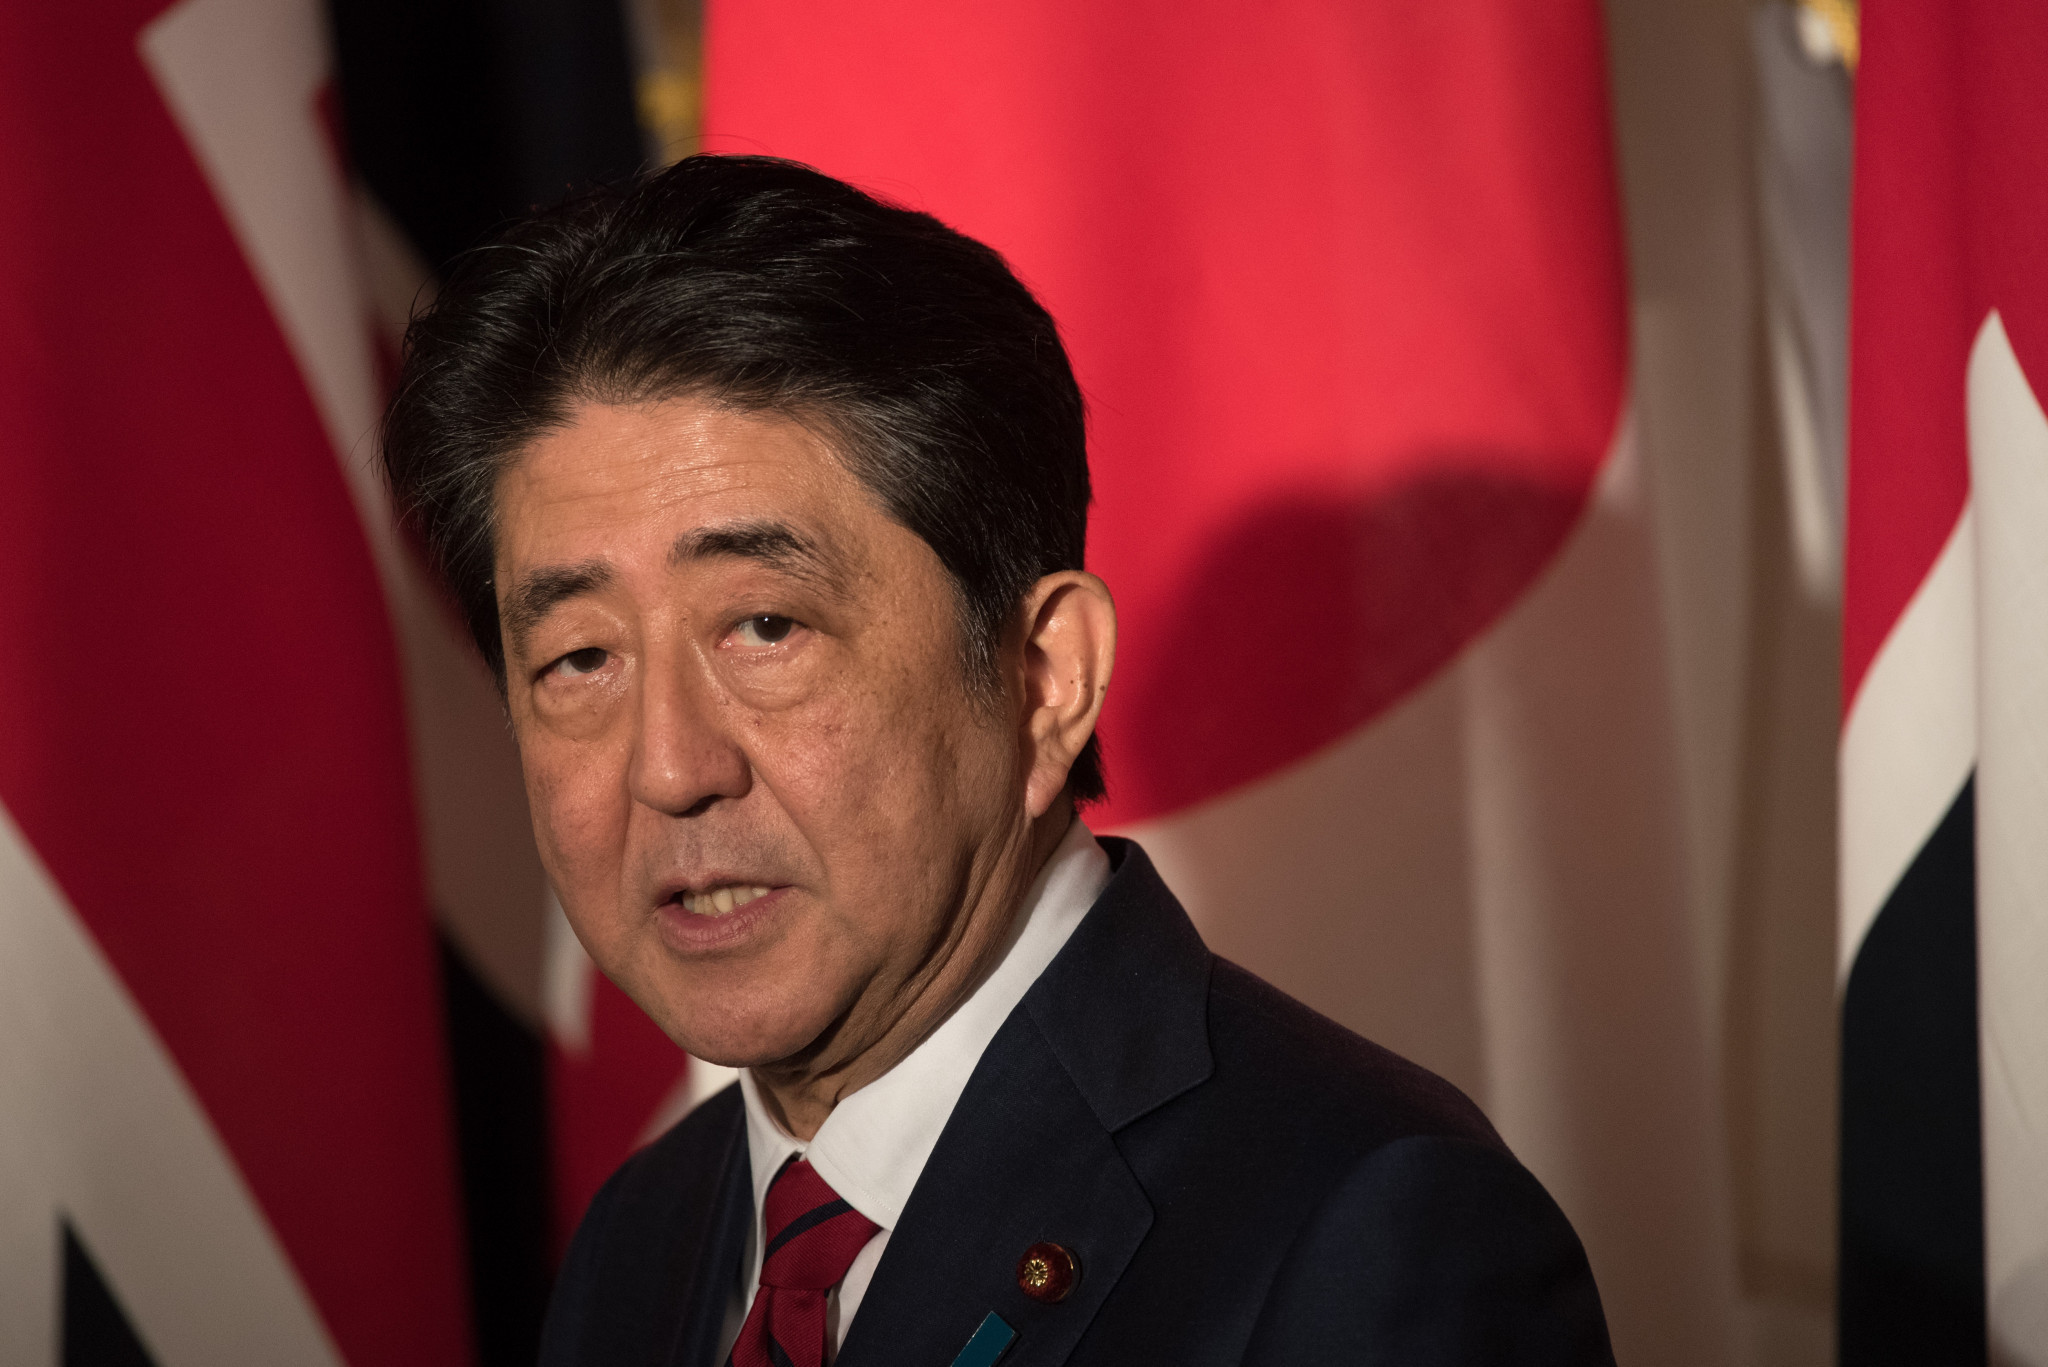 Japan's Prime Minister Shinzō Abe has insisted the Games will still go ahead as planned ©Getty Images